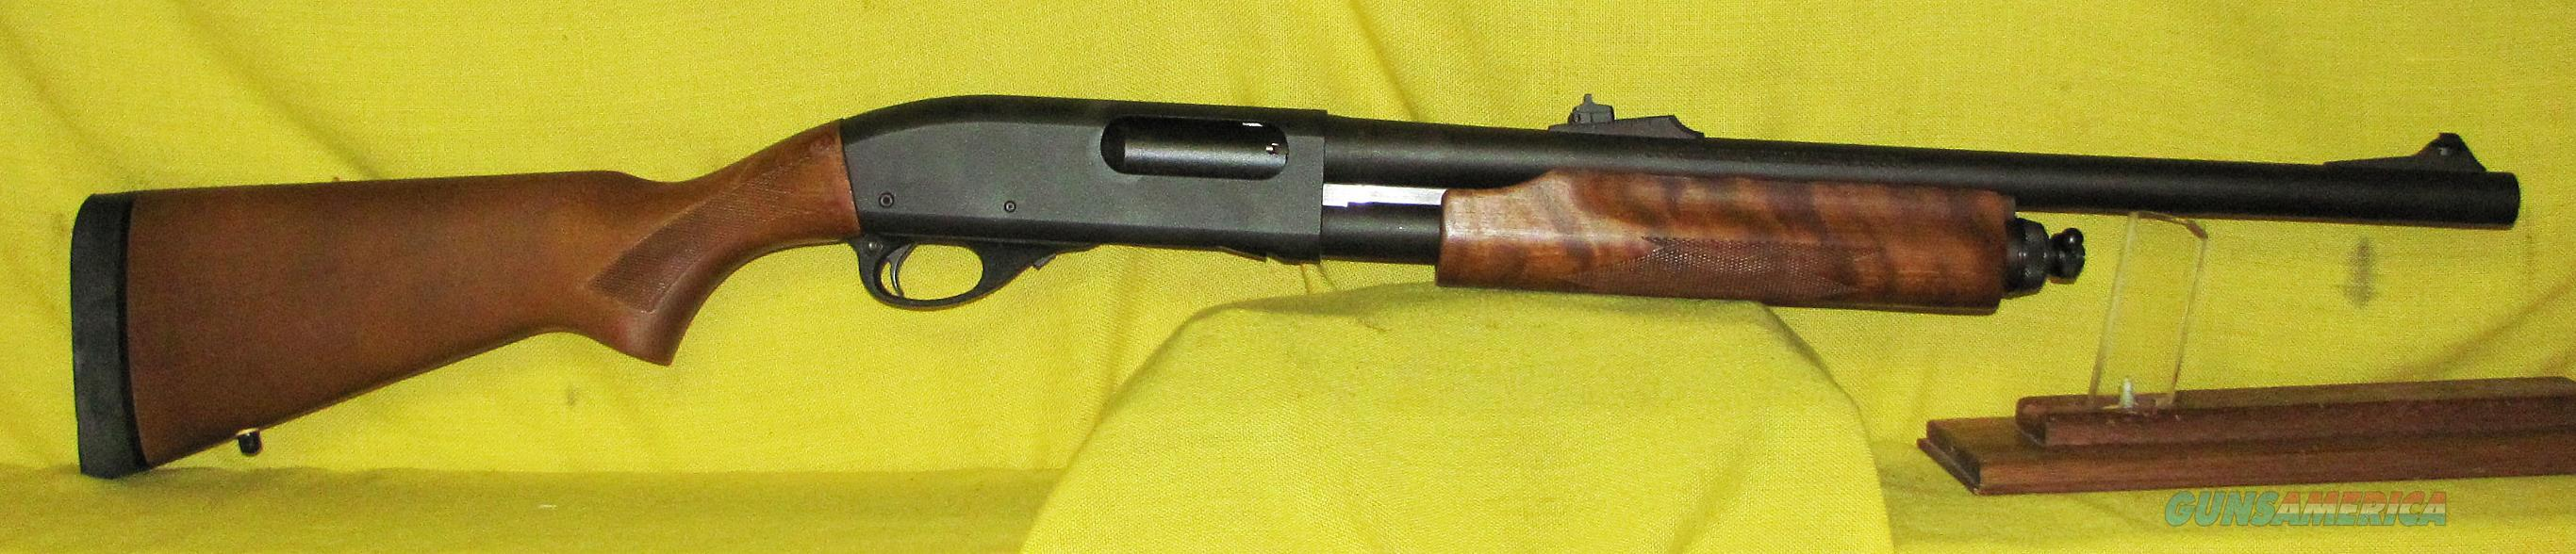 REMINGTON 870 EXPRESS MAGNUM  Guns > Shotguns > Remington Shotguns  > Pump > Hunting